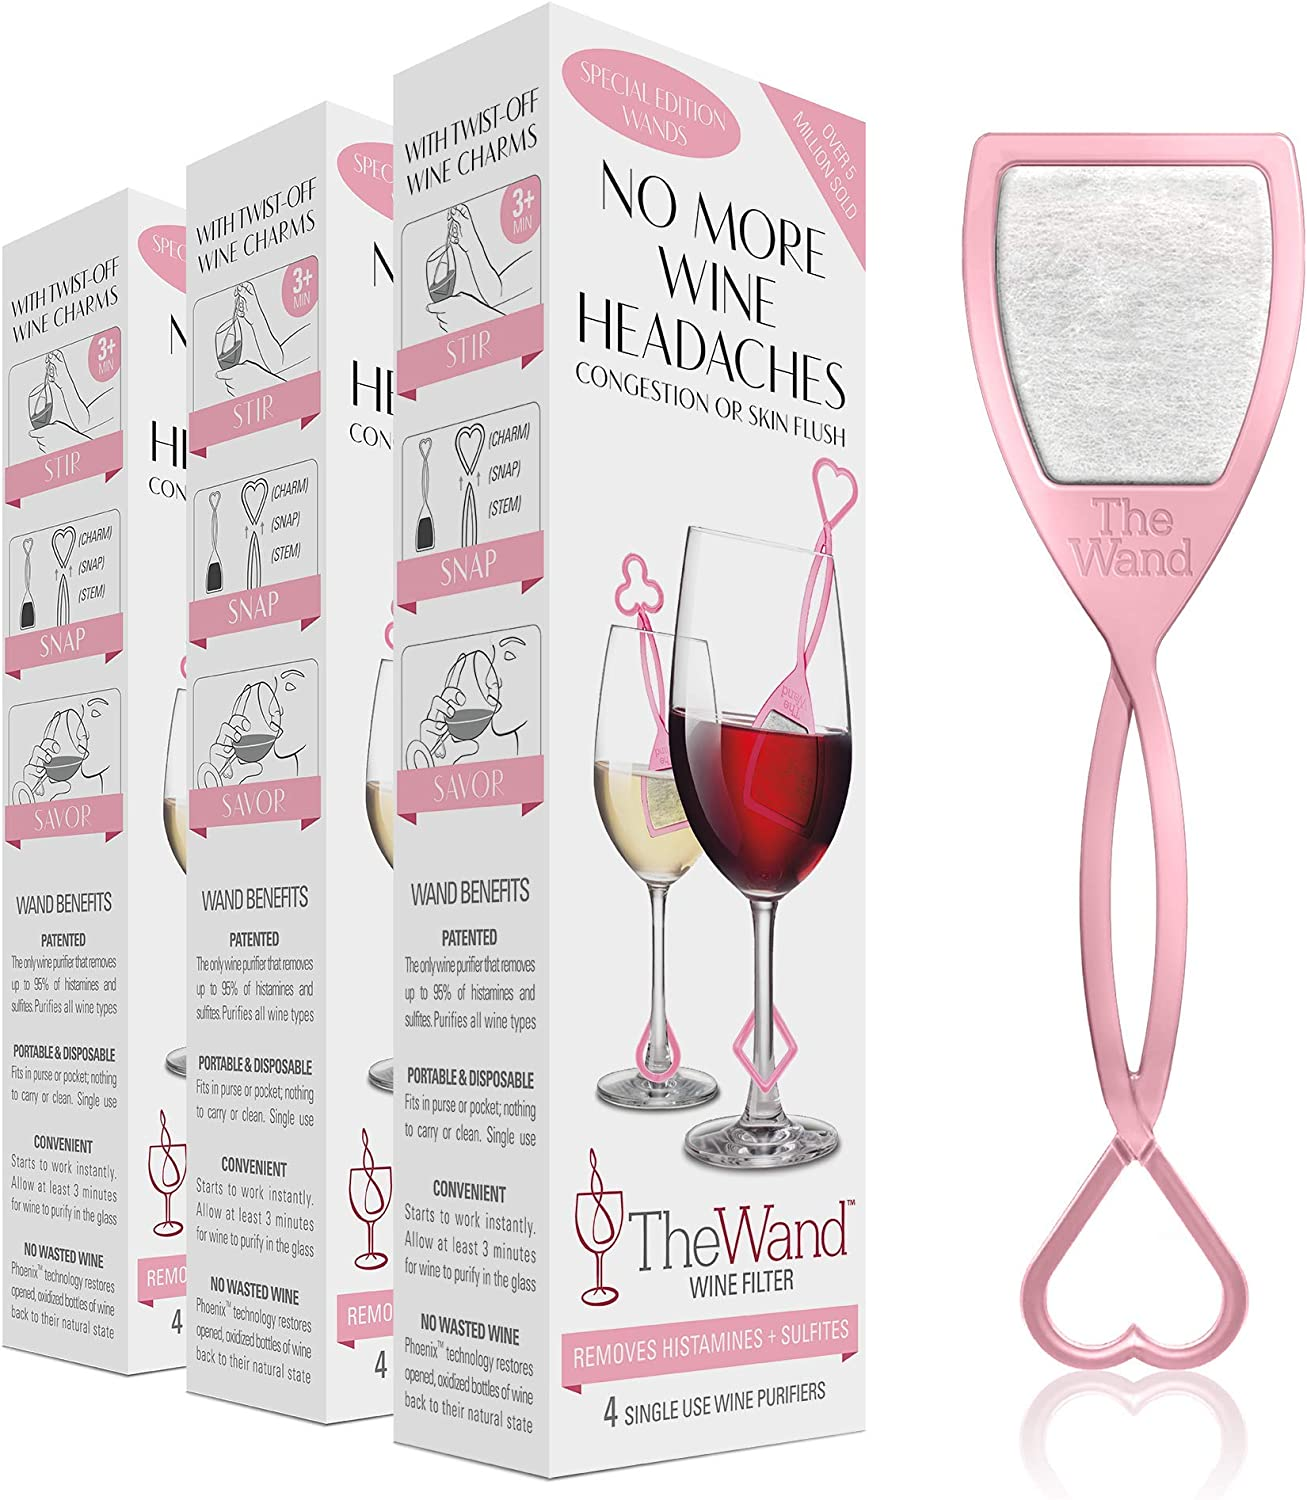 The Wand Wine Filter by PureWine | No More Wine Headaches | Removes Sulfites AND Histamines | NEW Twist-Off Wine Charms | (12)